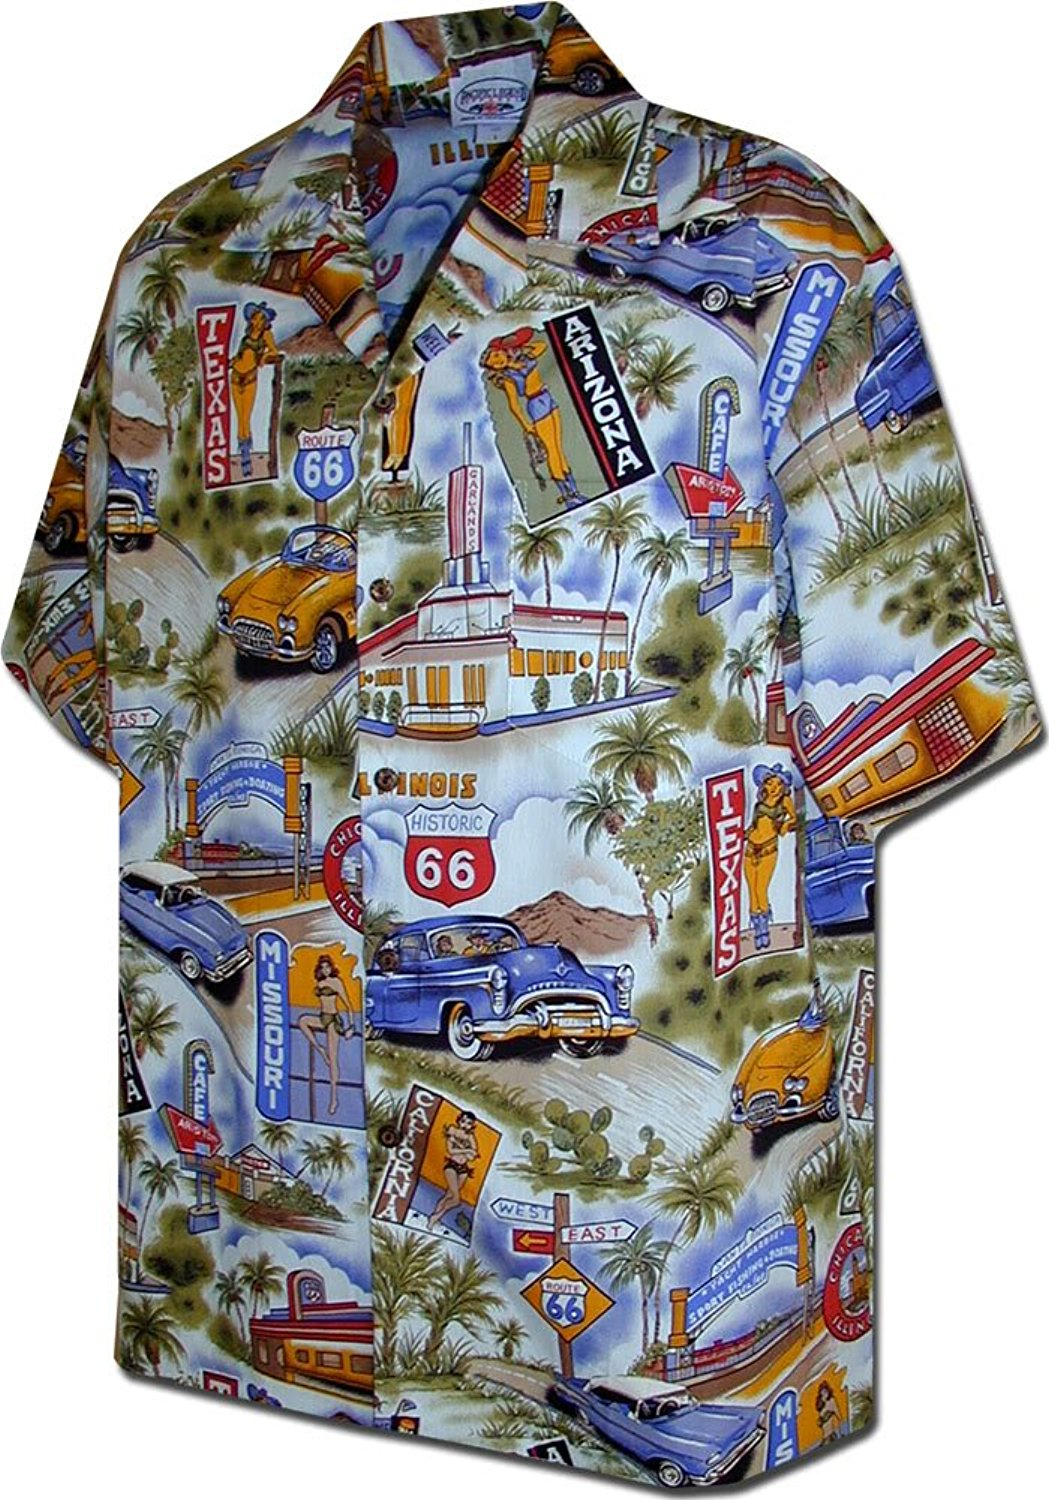 ea3949691 Cheap Route 66 Shirts, find Route 66 Shirts deals on line at Alibaba.com